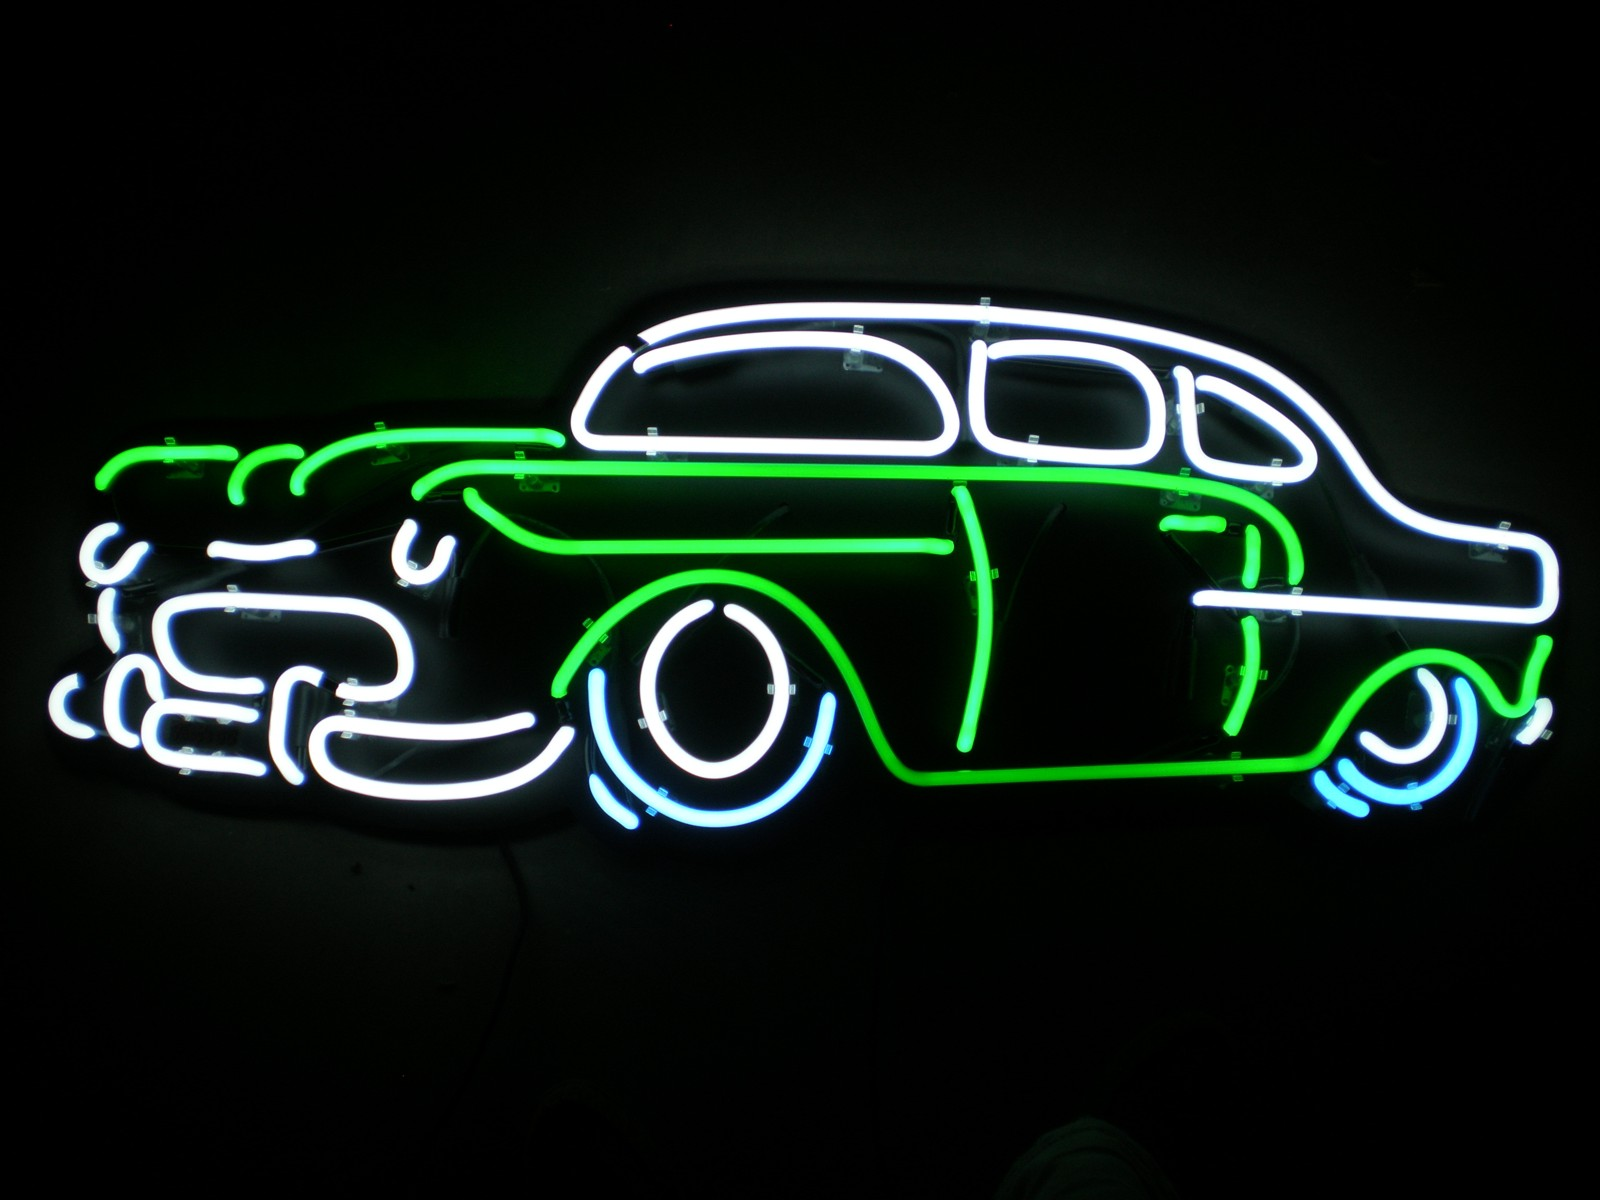 neon car computer wallpaper 62119